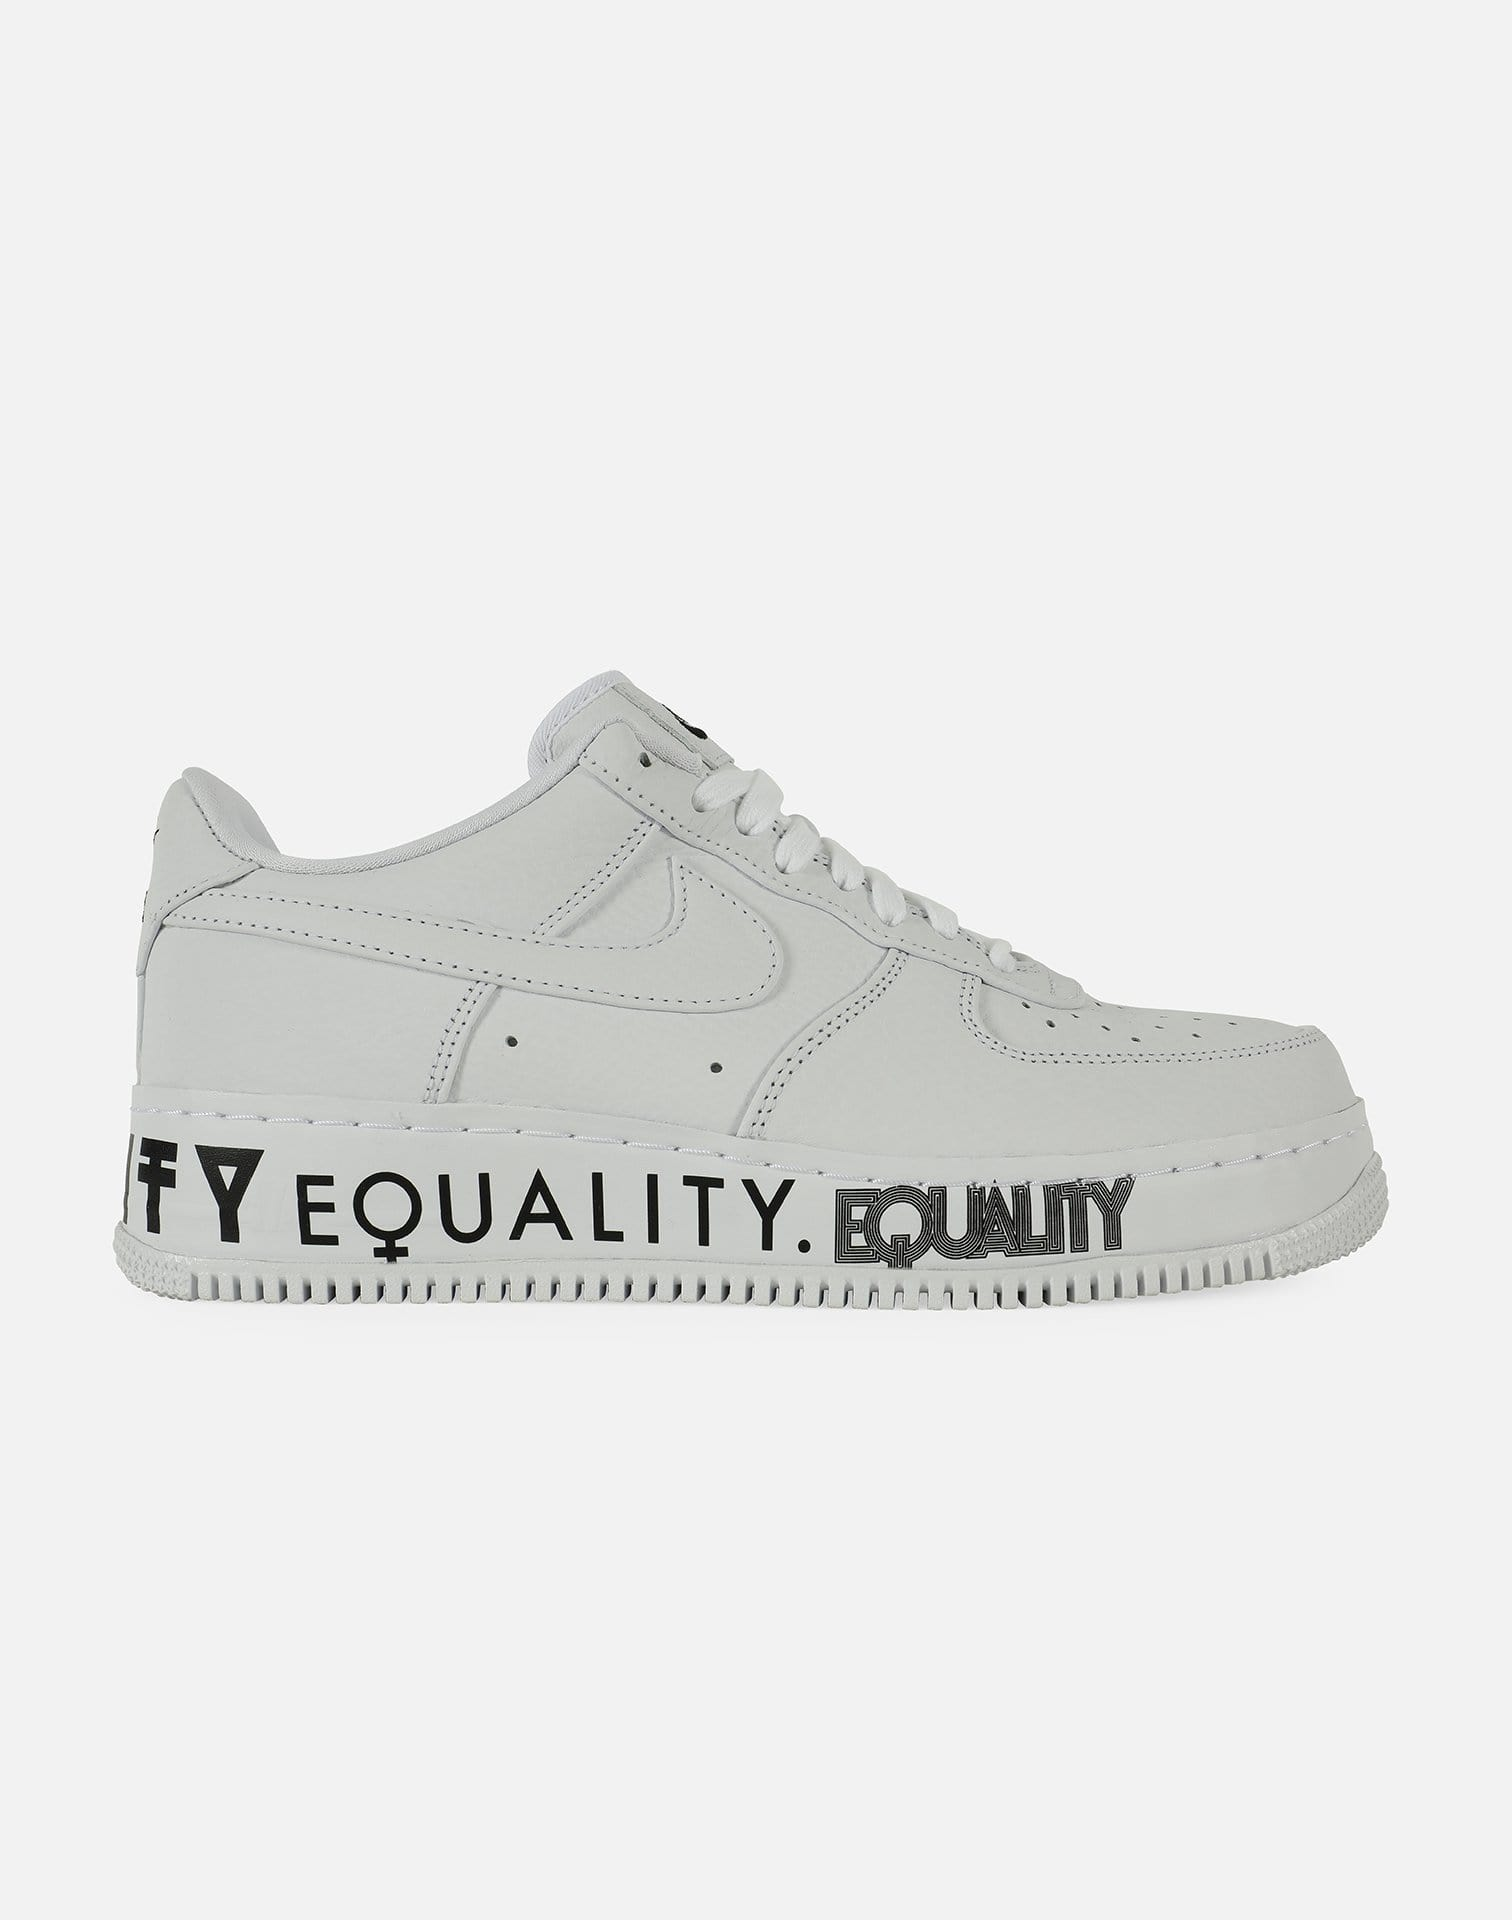 Nike Men's Air Force 1 Low QS 'Equality'